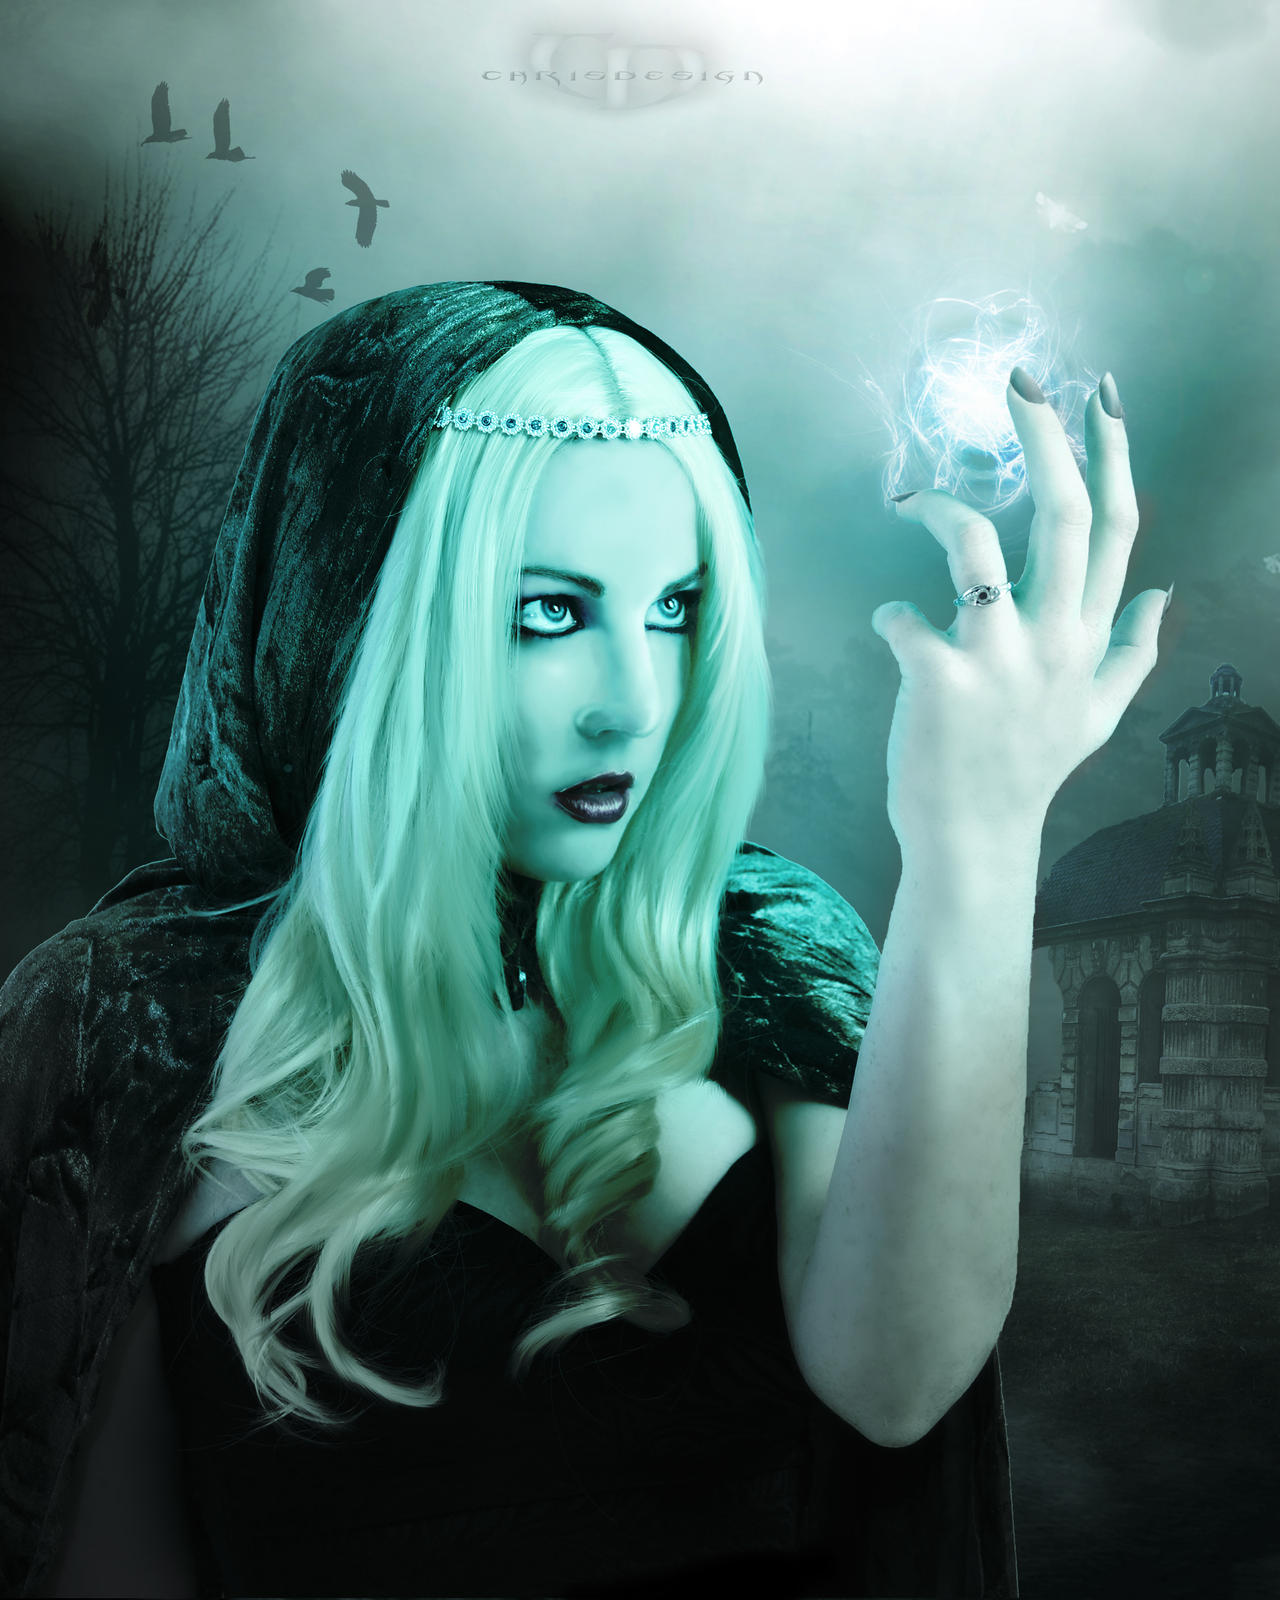 The Blue Witch by ChrisDesign47